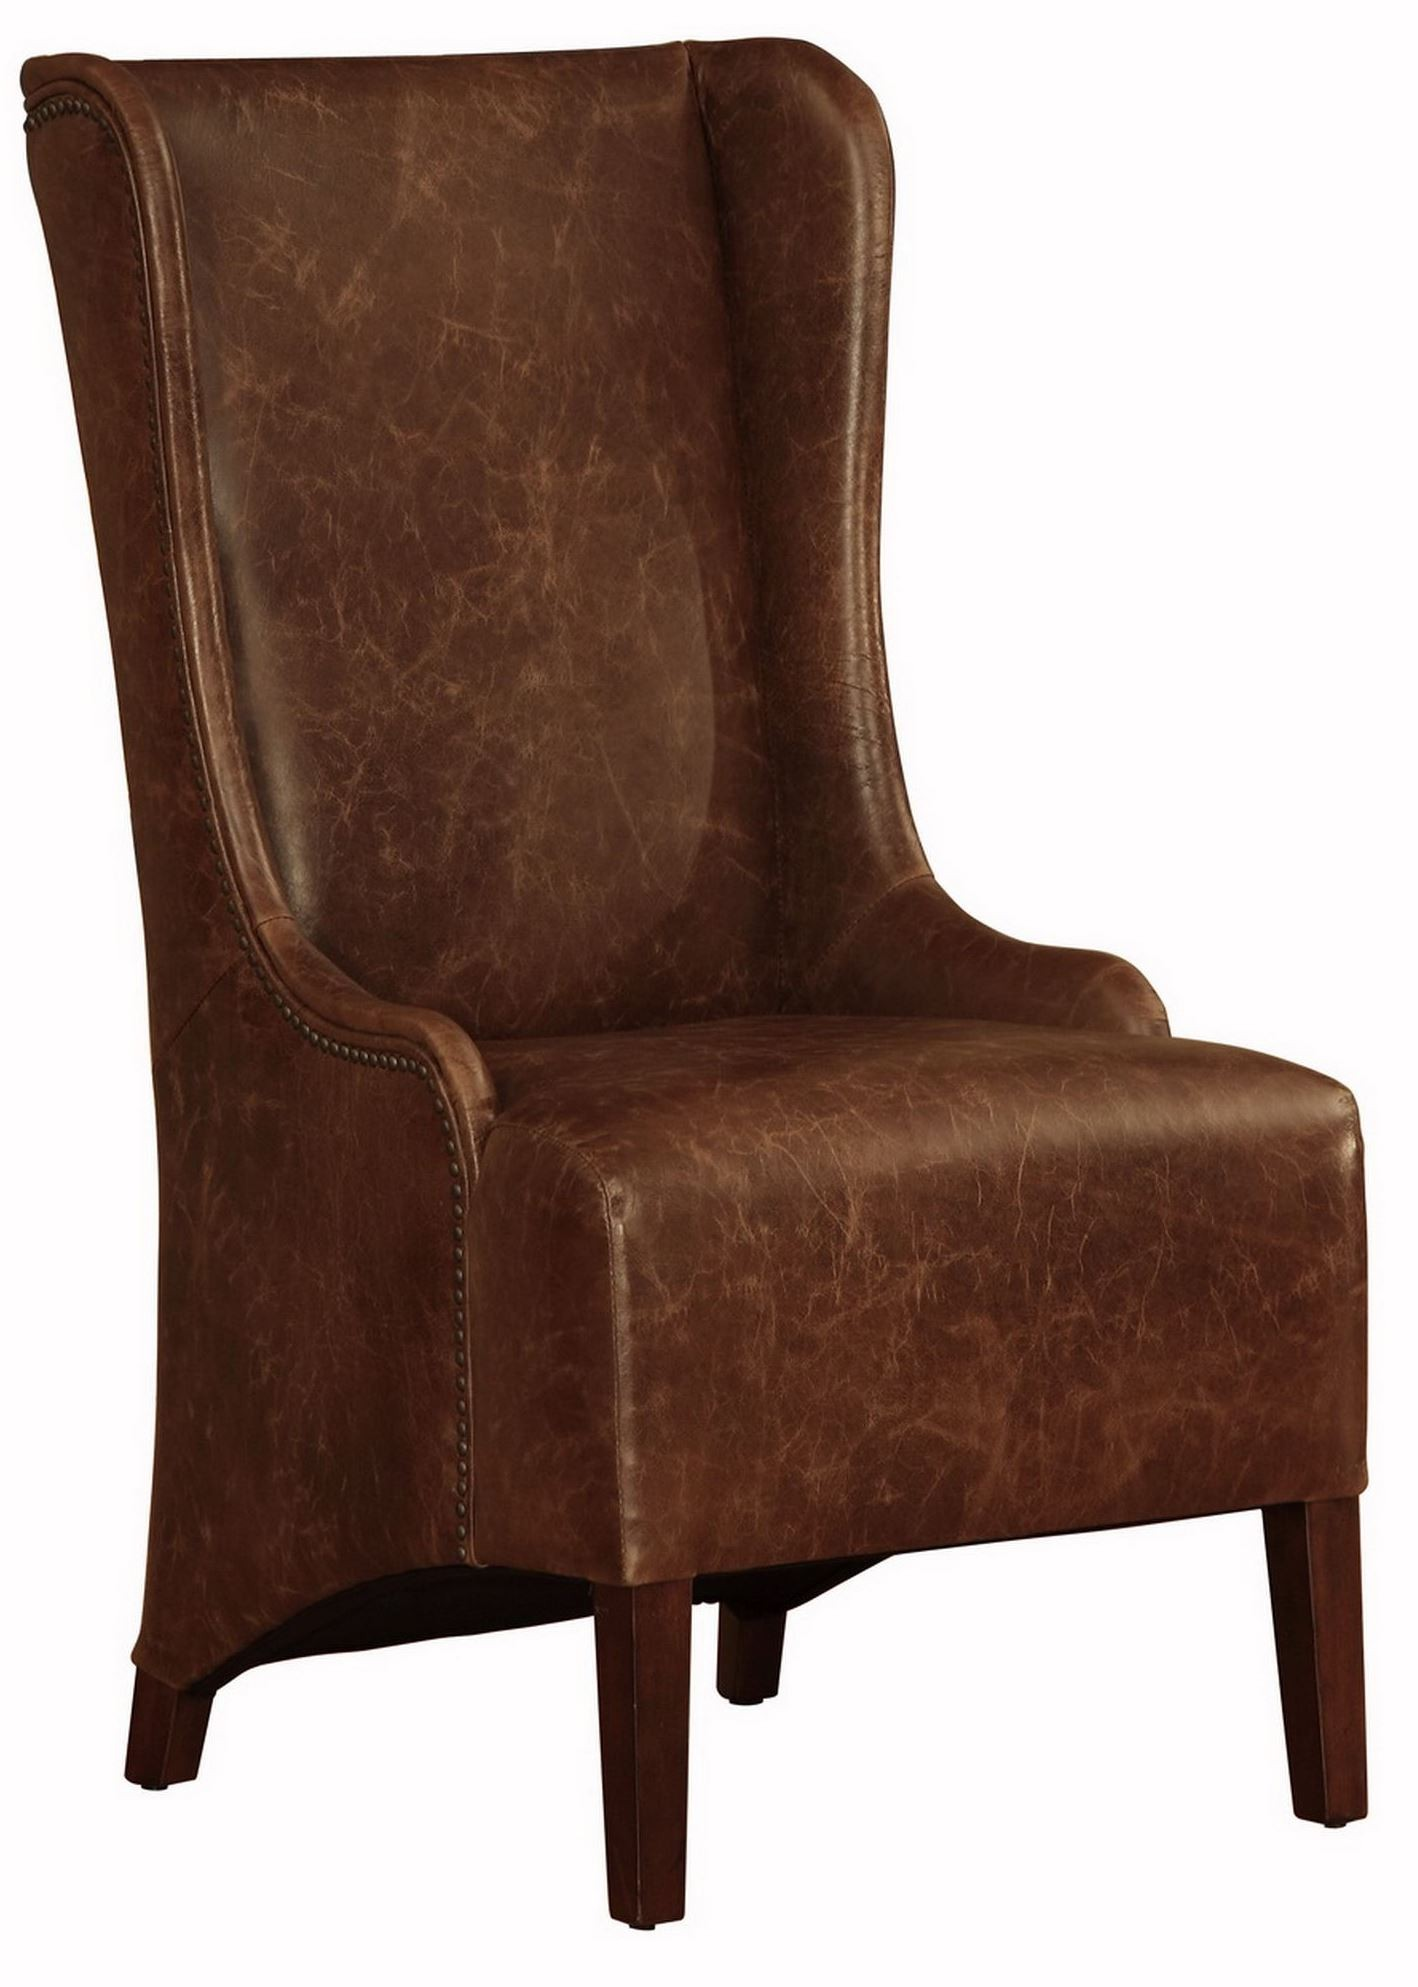 king furniture dining chairs fishing bed chair used coco brompton leather high back from